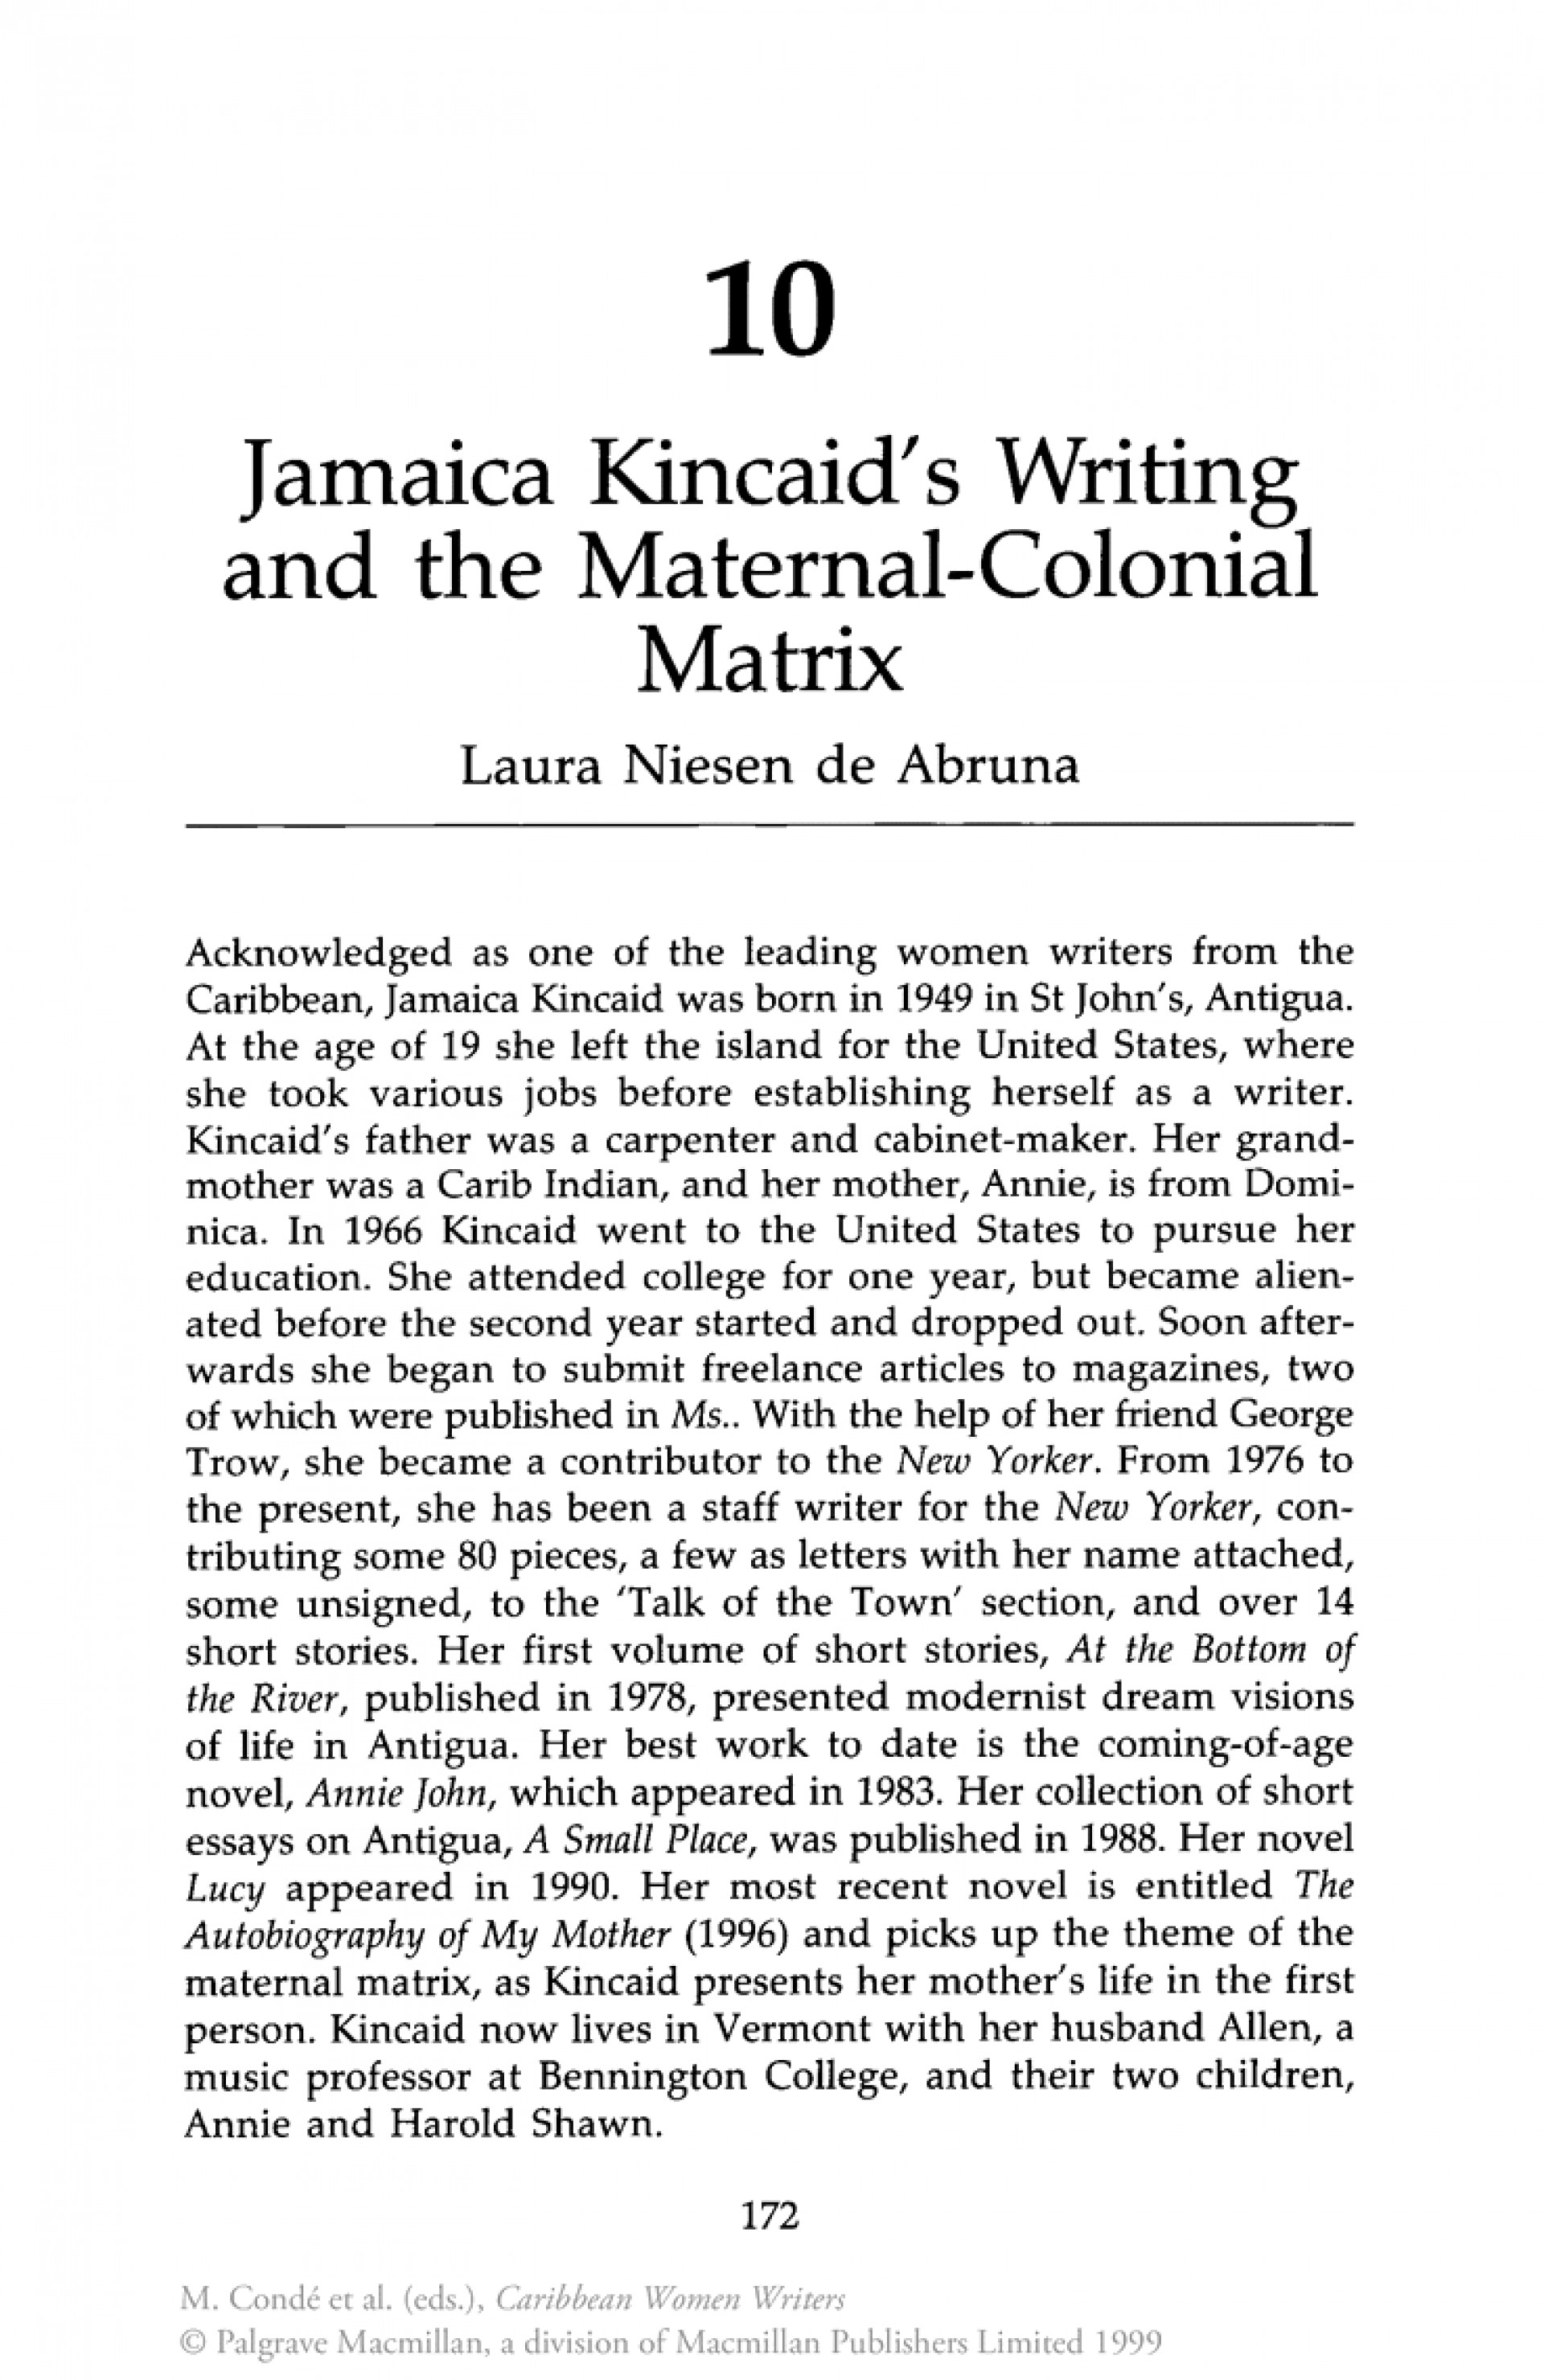 005 Kincaid Essay Jamaica Girl Free Topics Critical By Title On Marvelous 1920